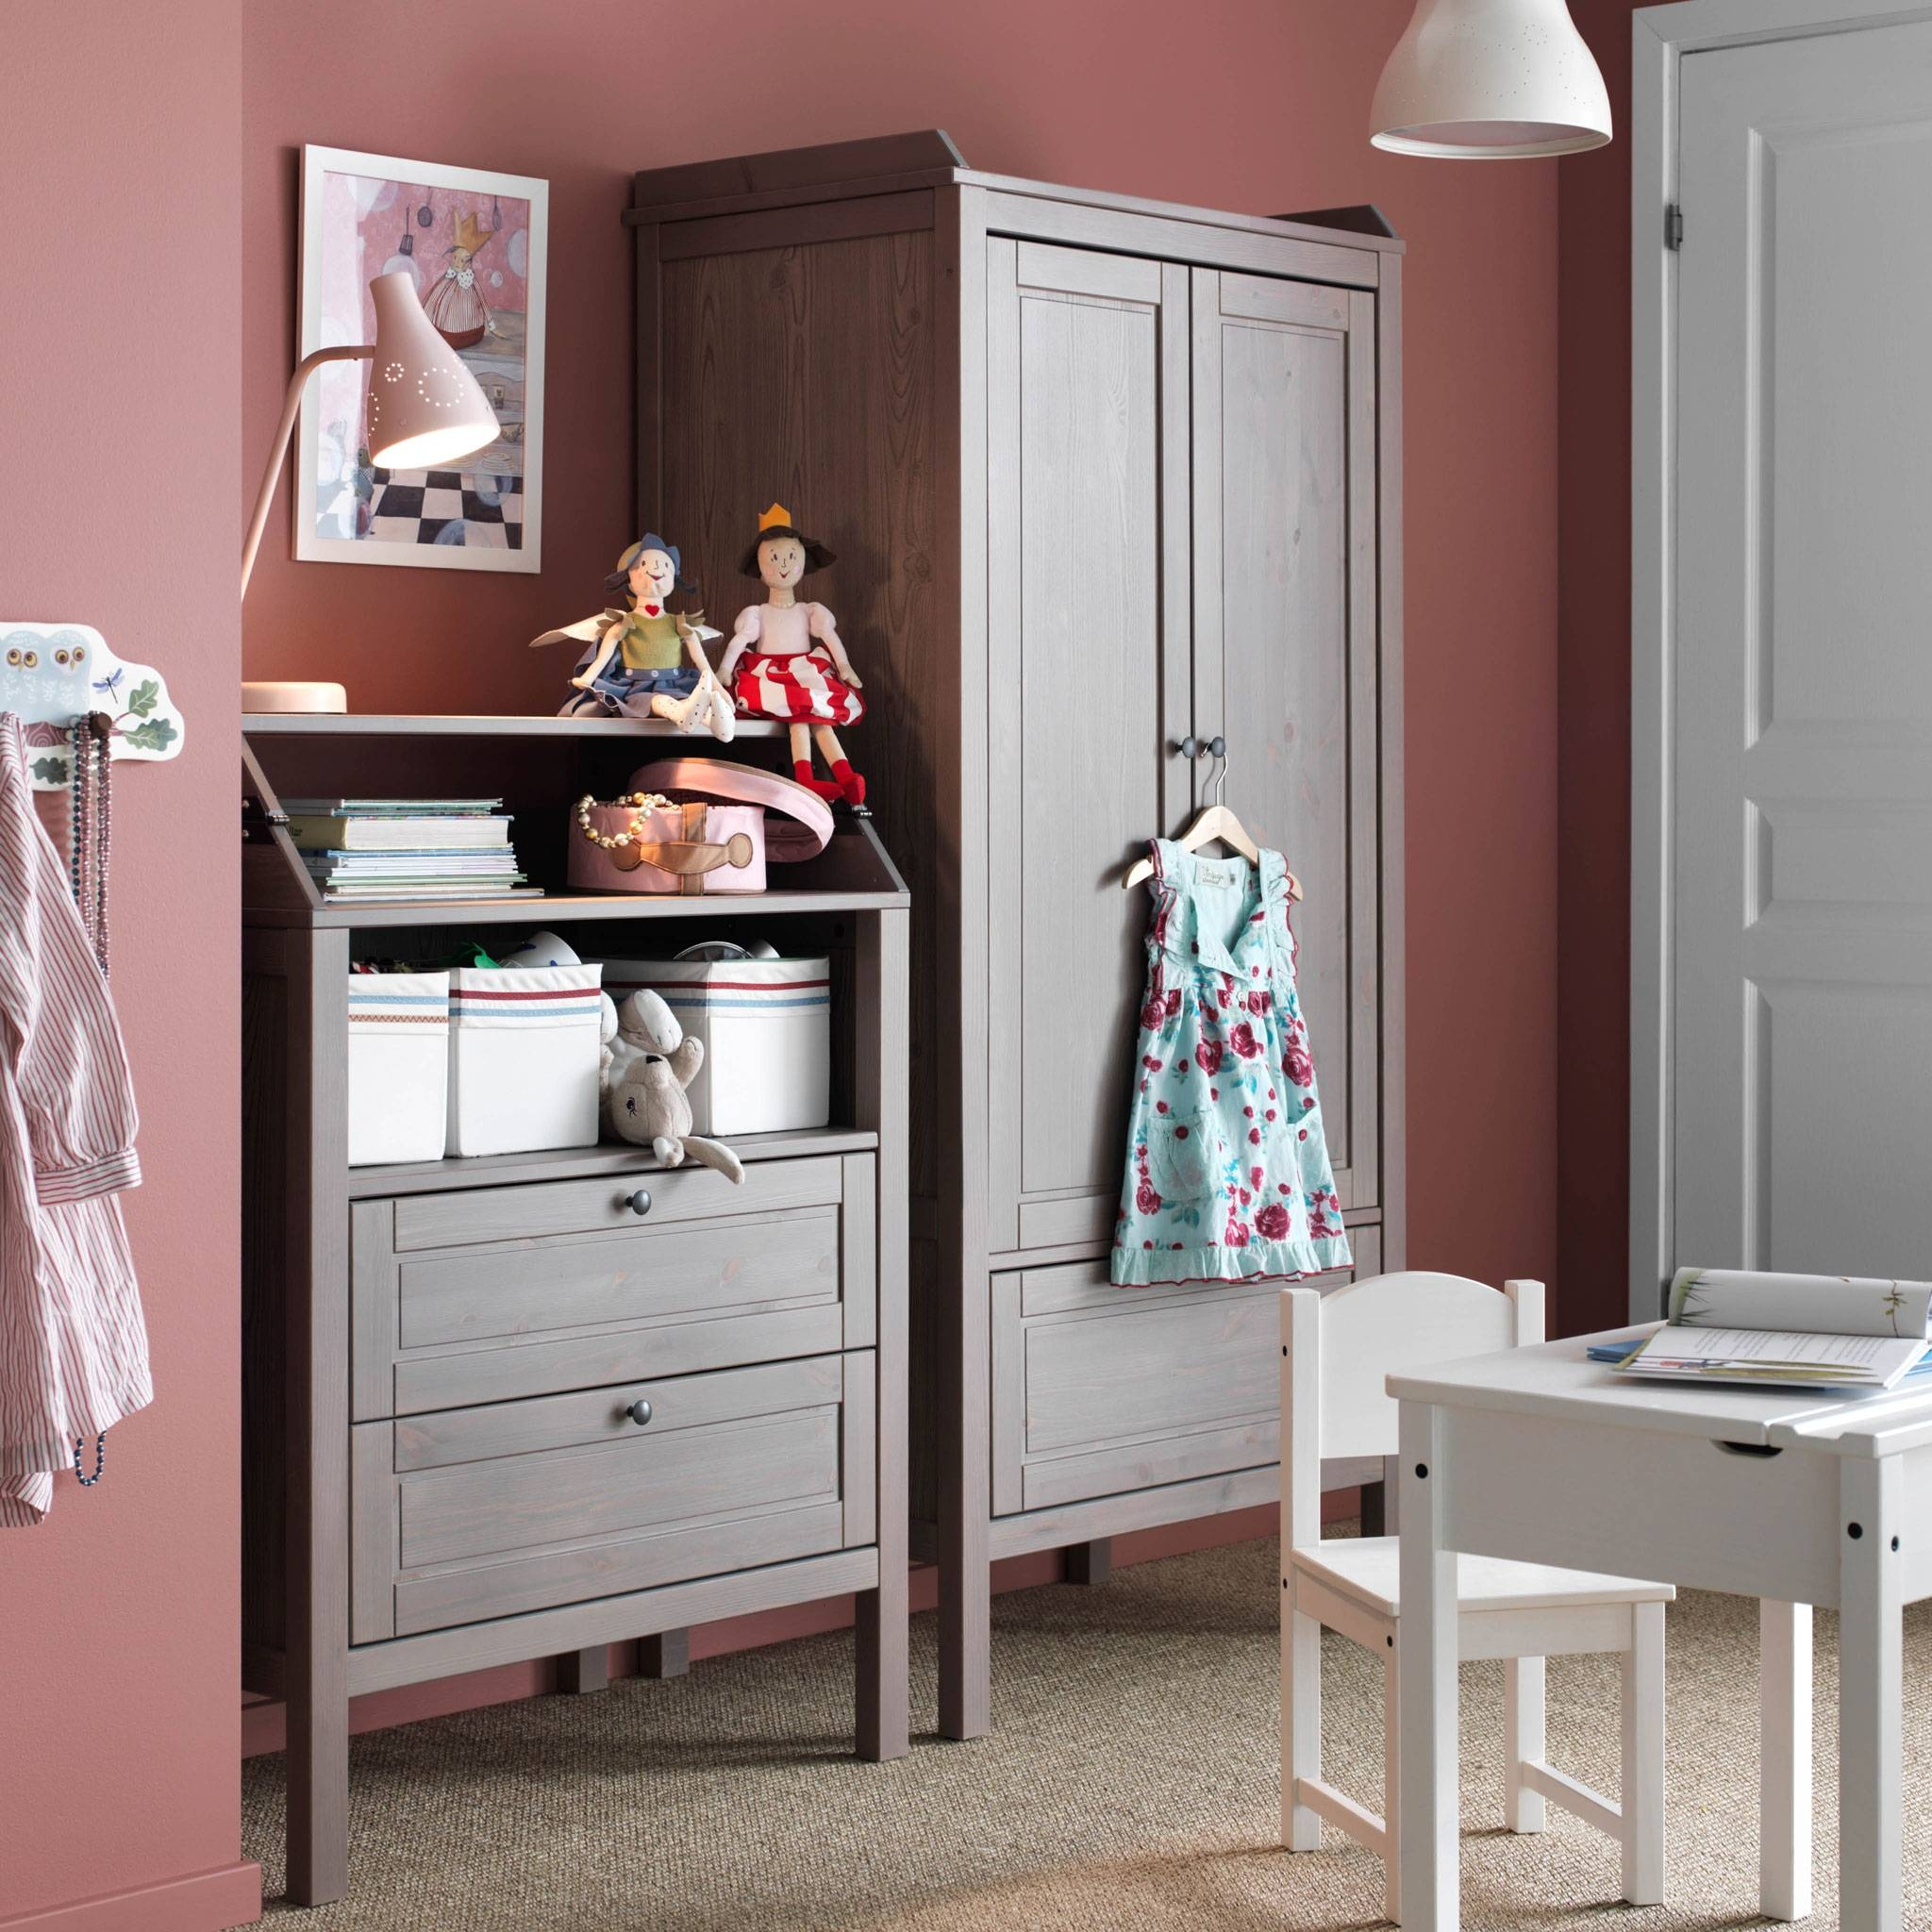 Childrens Furniture & Childrens Ideas | Ikea Ireland with Wardrobes Chest of Drawers Combination (Image 5 of 15)